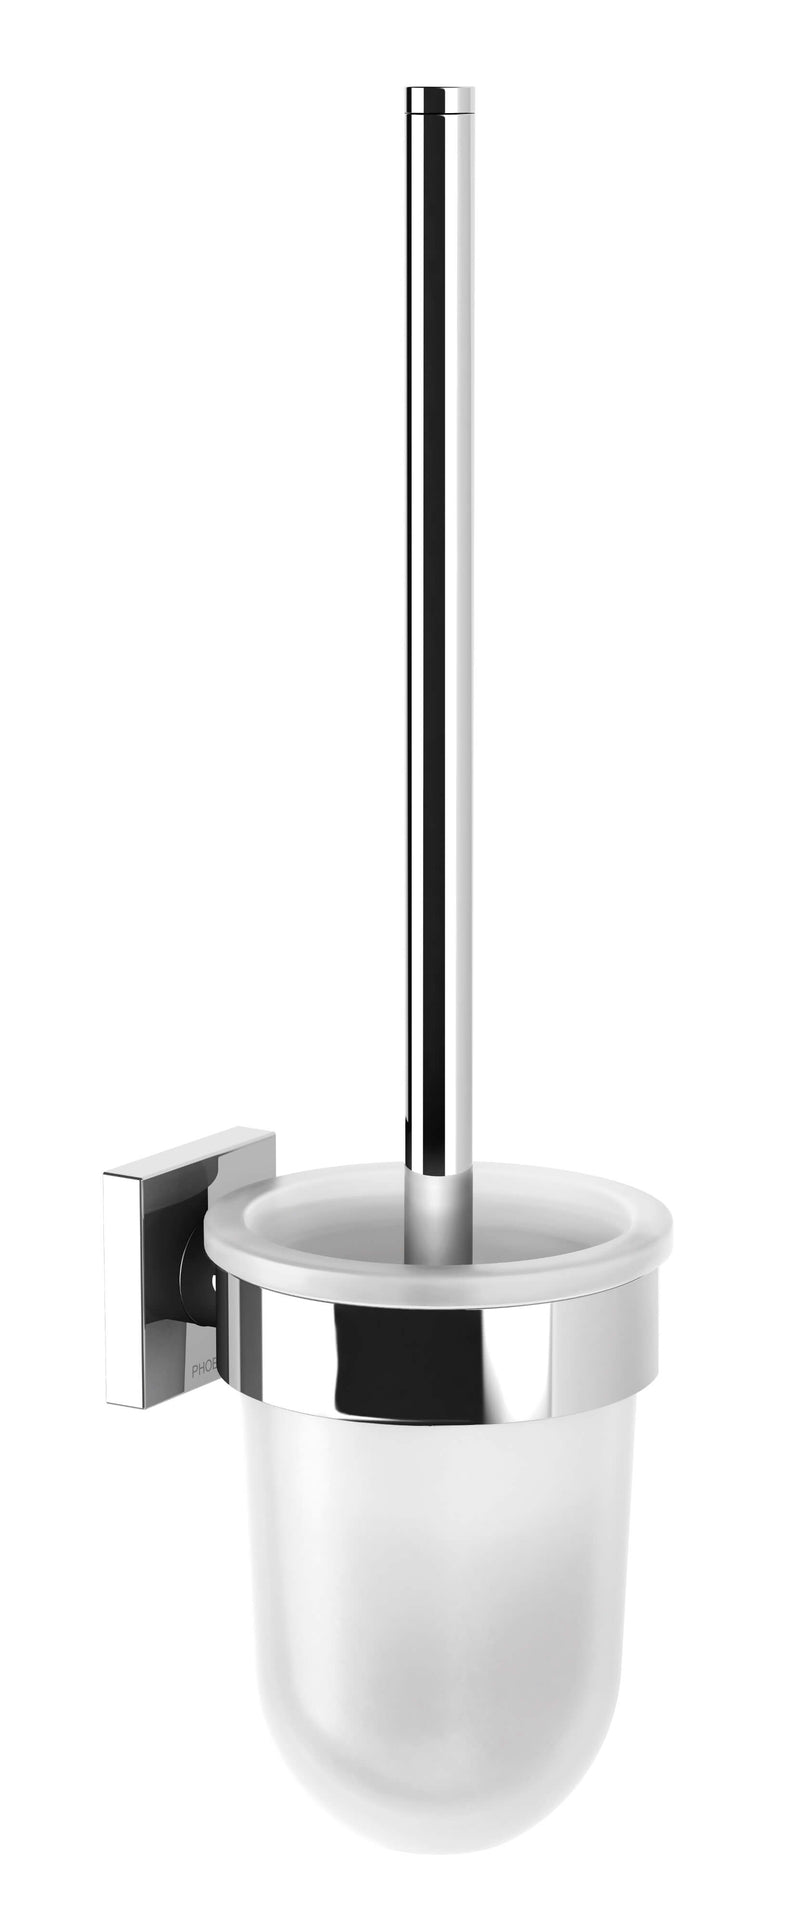 Radii Toilet Brush & Holder Square - Chrome